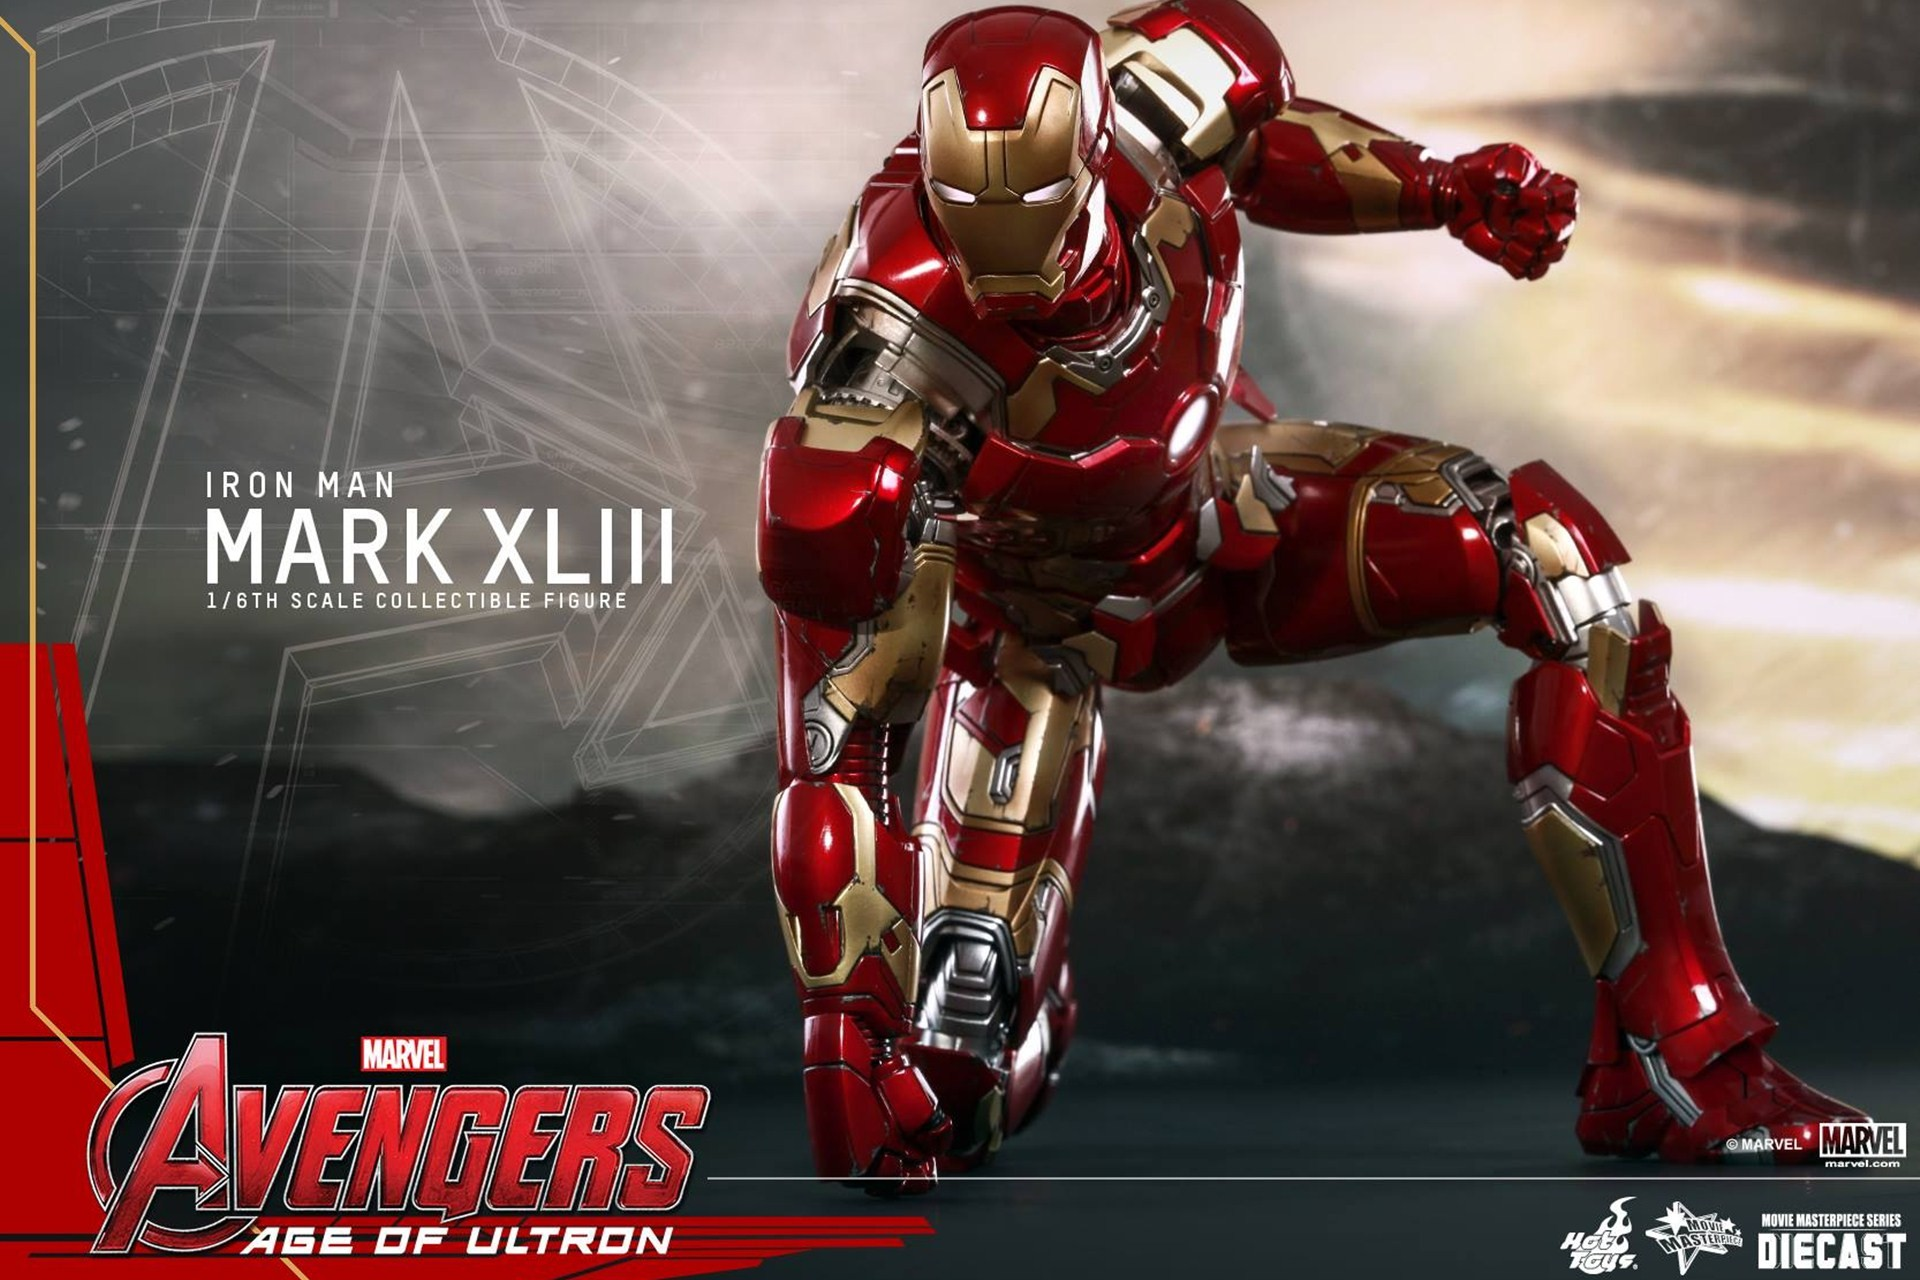 Age Of Ultron Poster HD Wallpaper Search more Hollywood Movies high 1920x1280